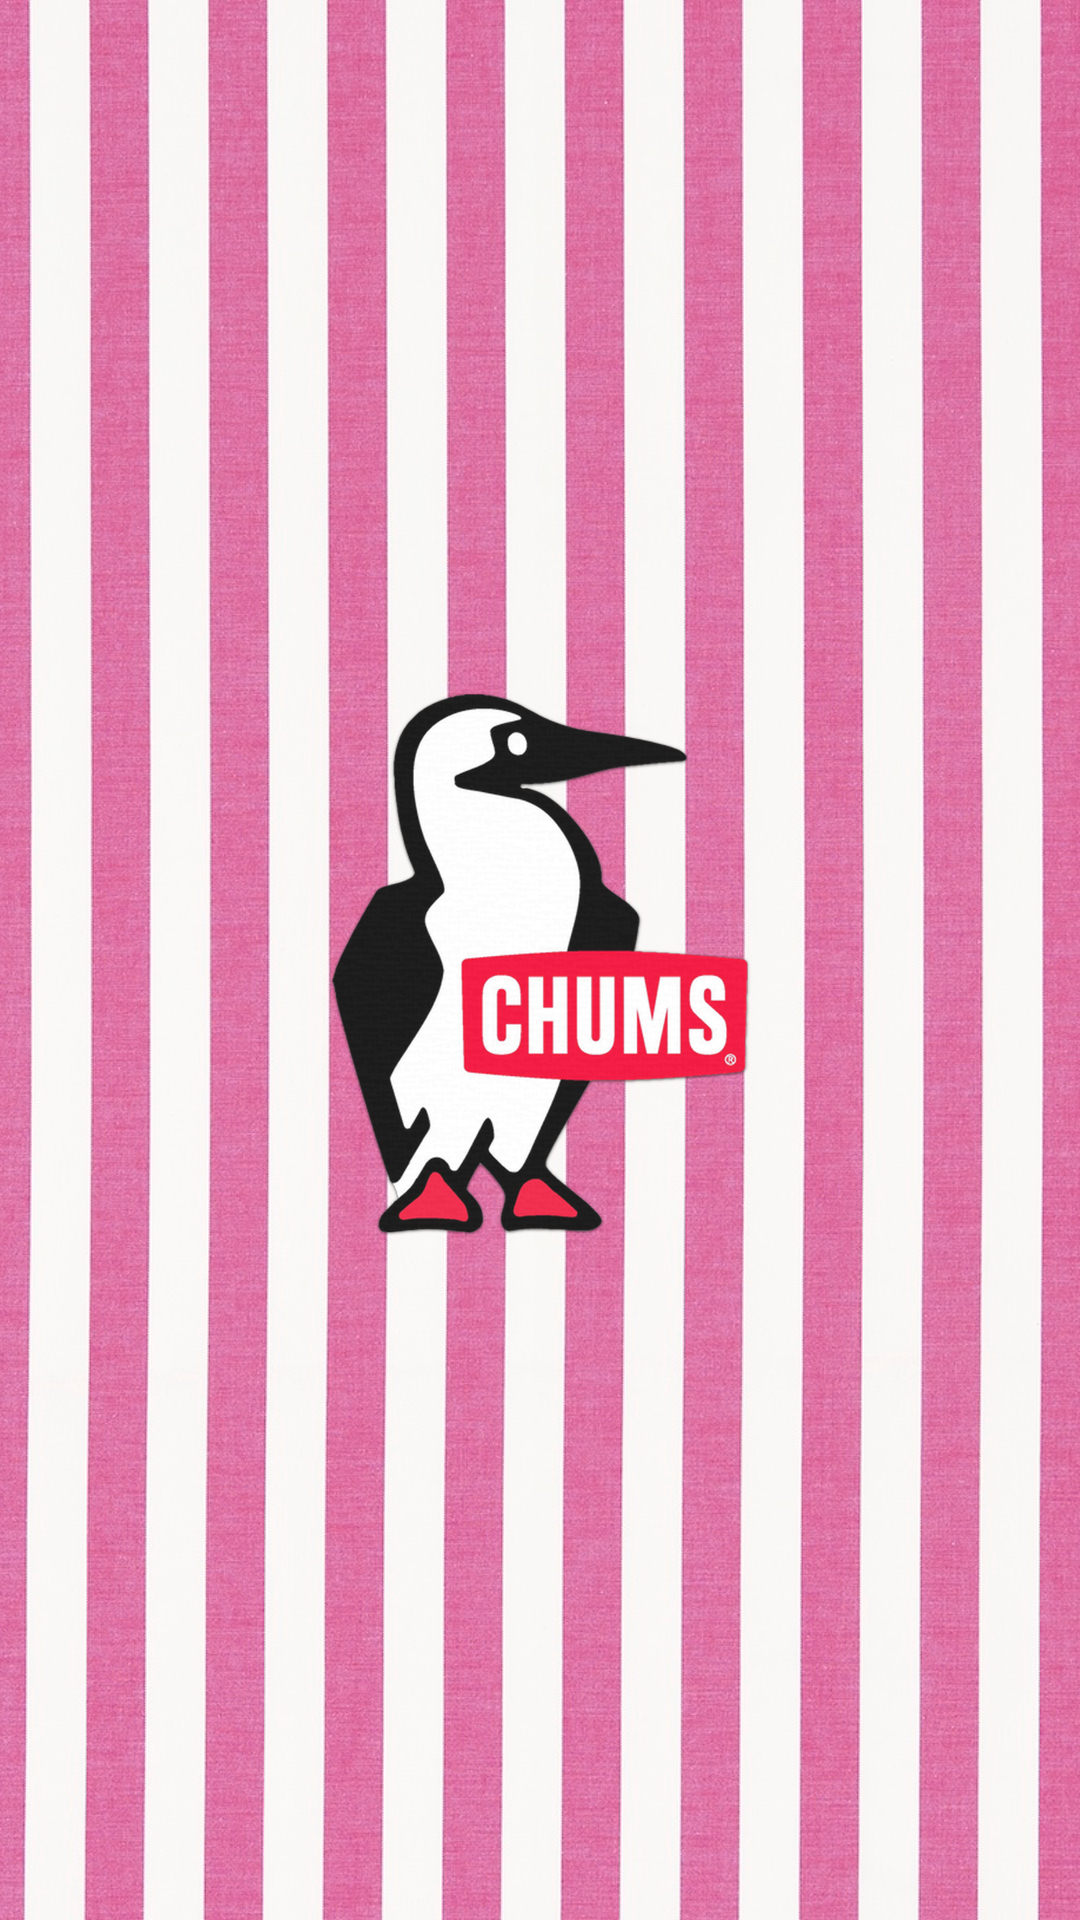 chums18 - 50 CHUMS HQ Smartphone Wallpaper Collection